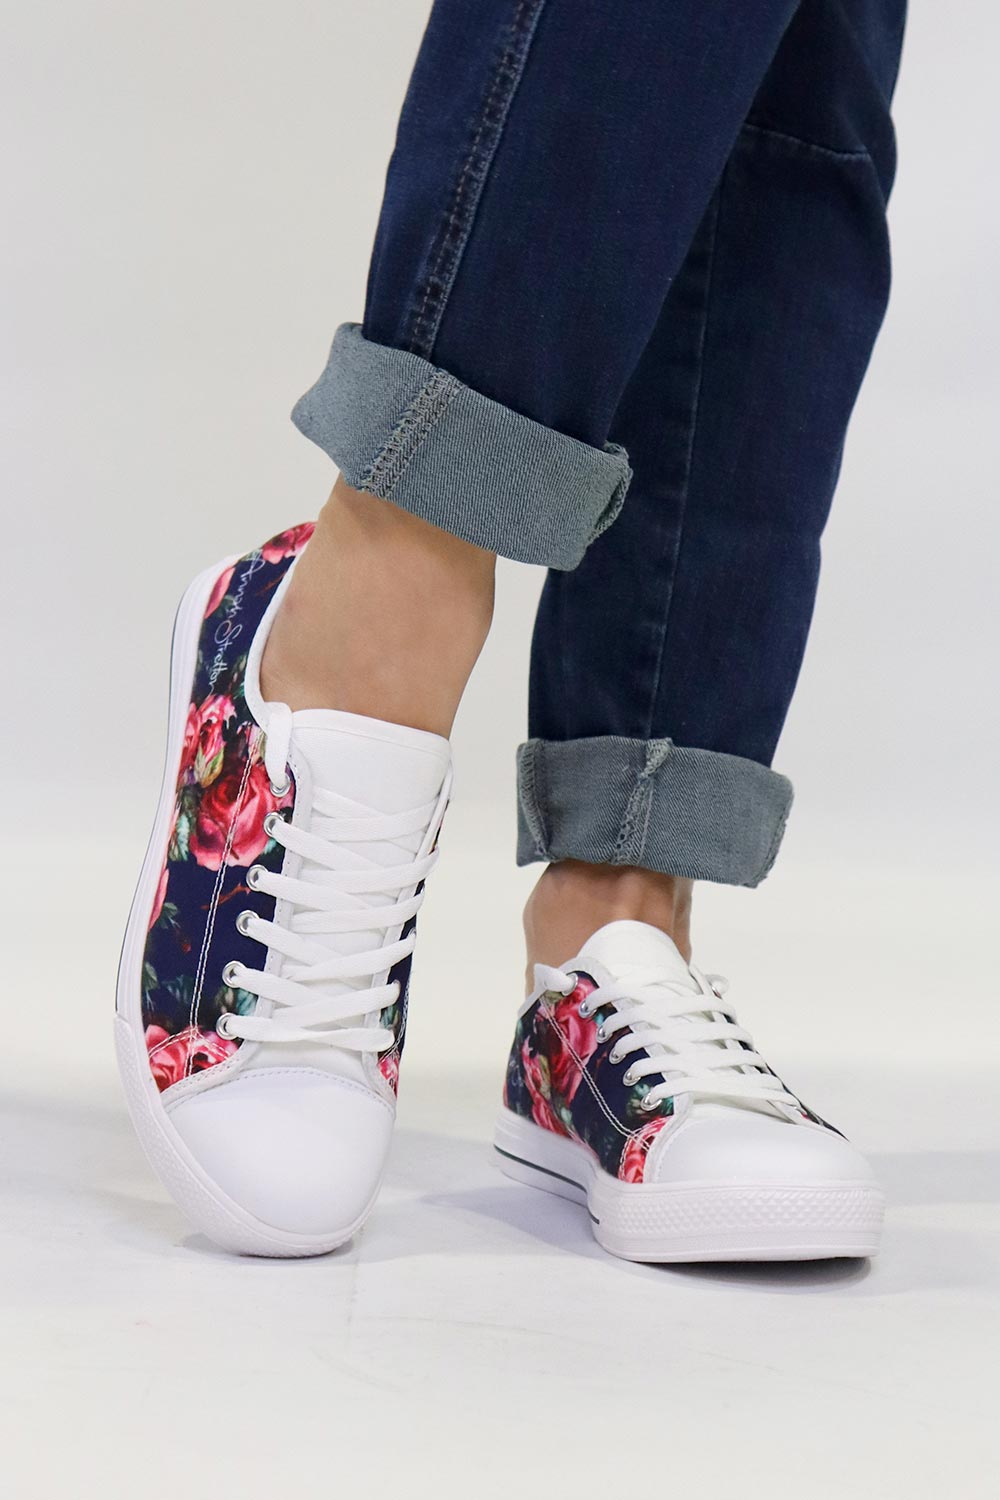 navy baby floral canvas sneaker with jeans